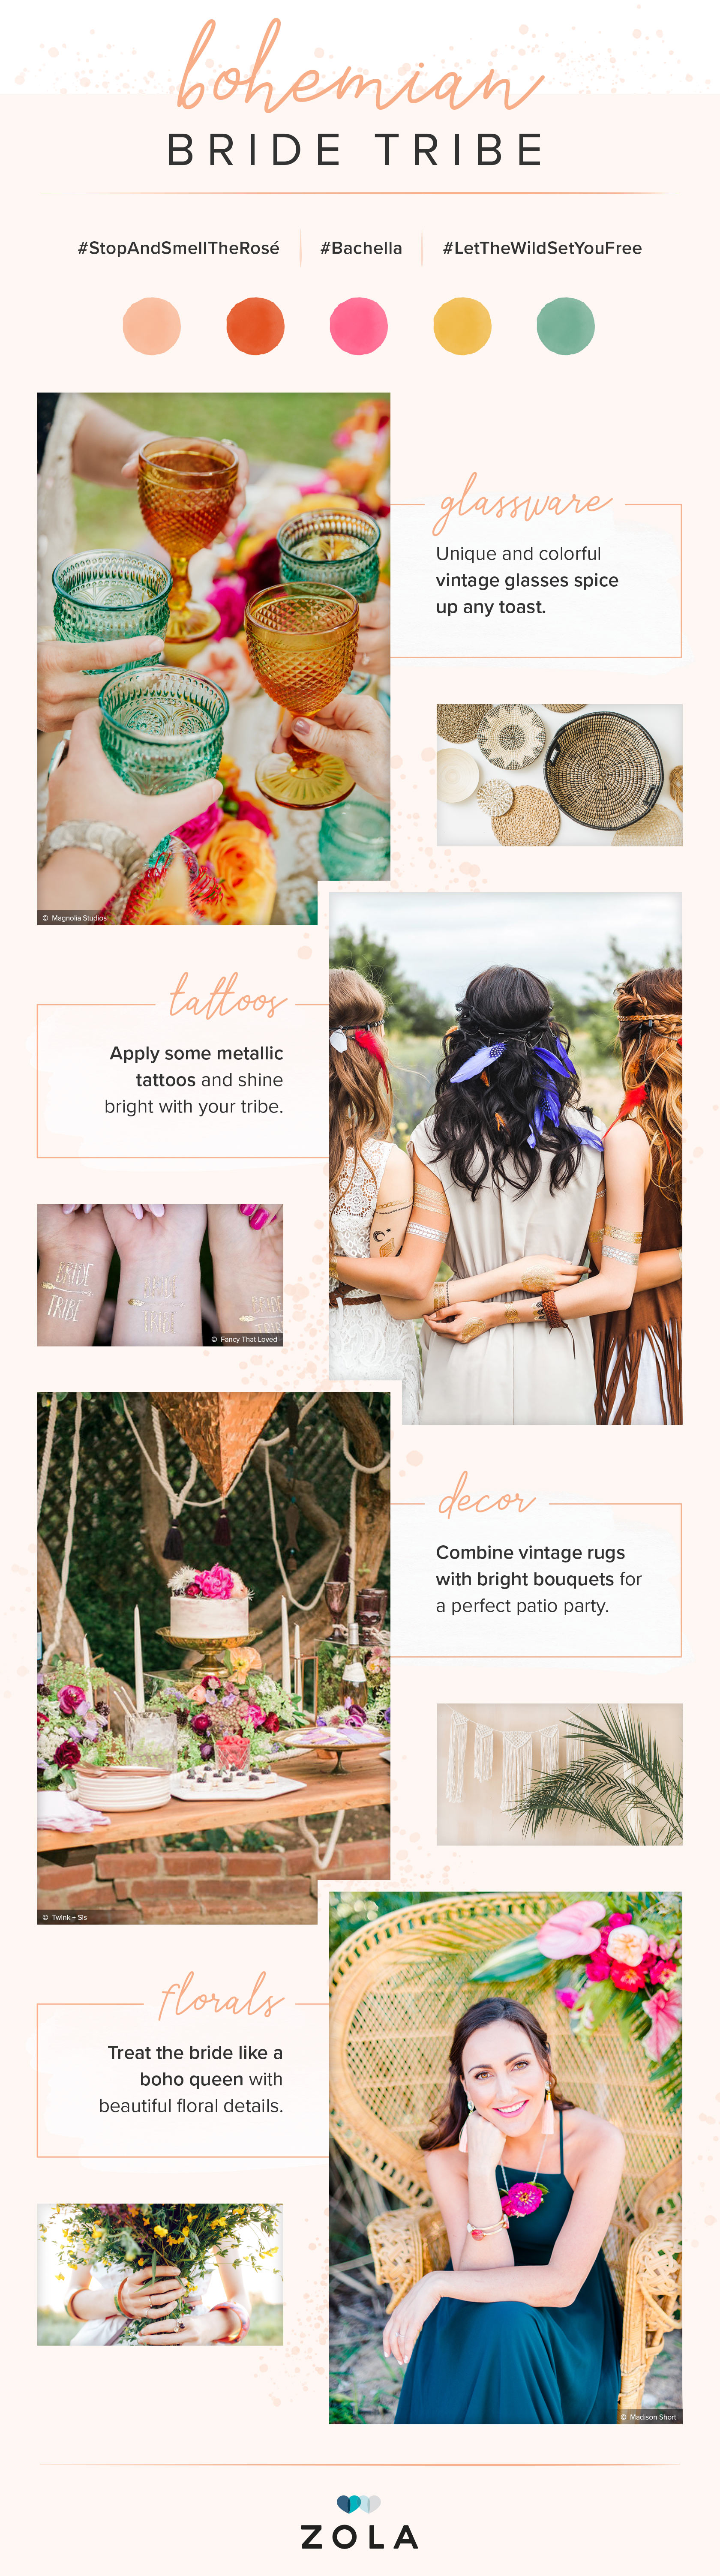 bachelorette-party-ideas-boho